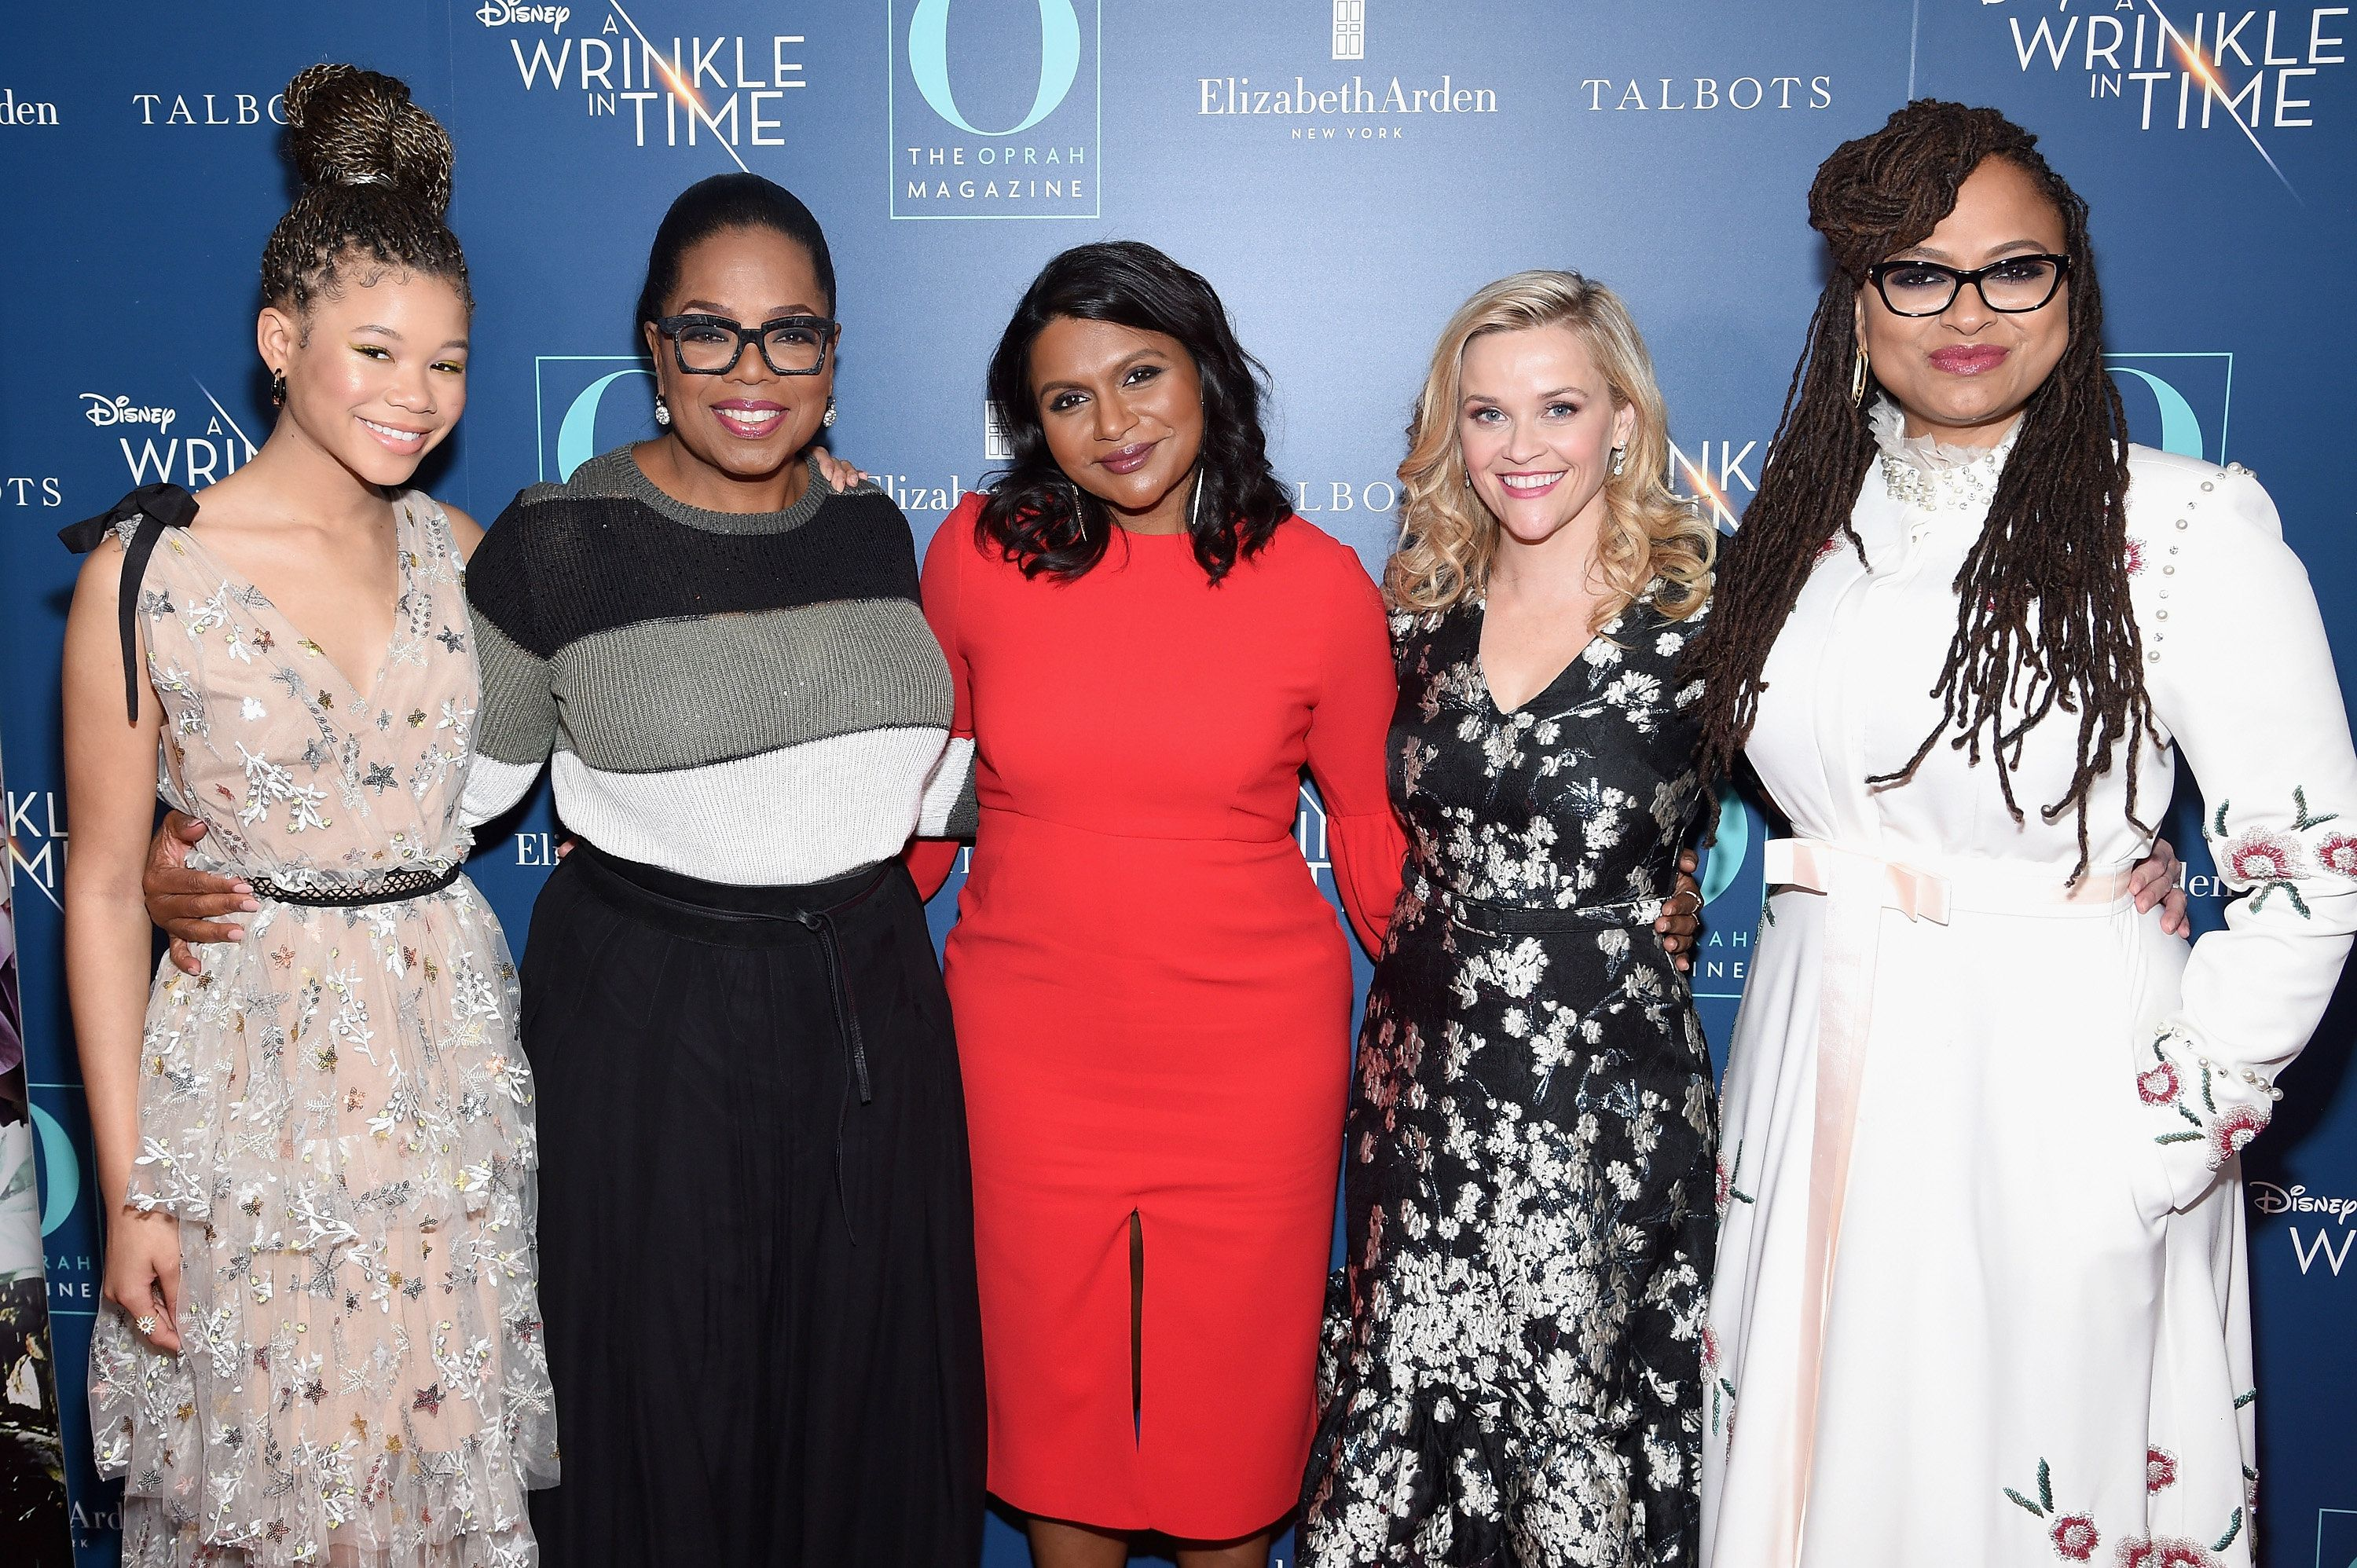 Even Oprah can't save disappointing 'Wrinkle in Time'